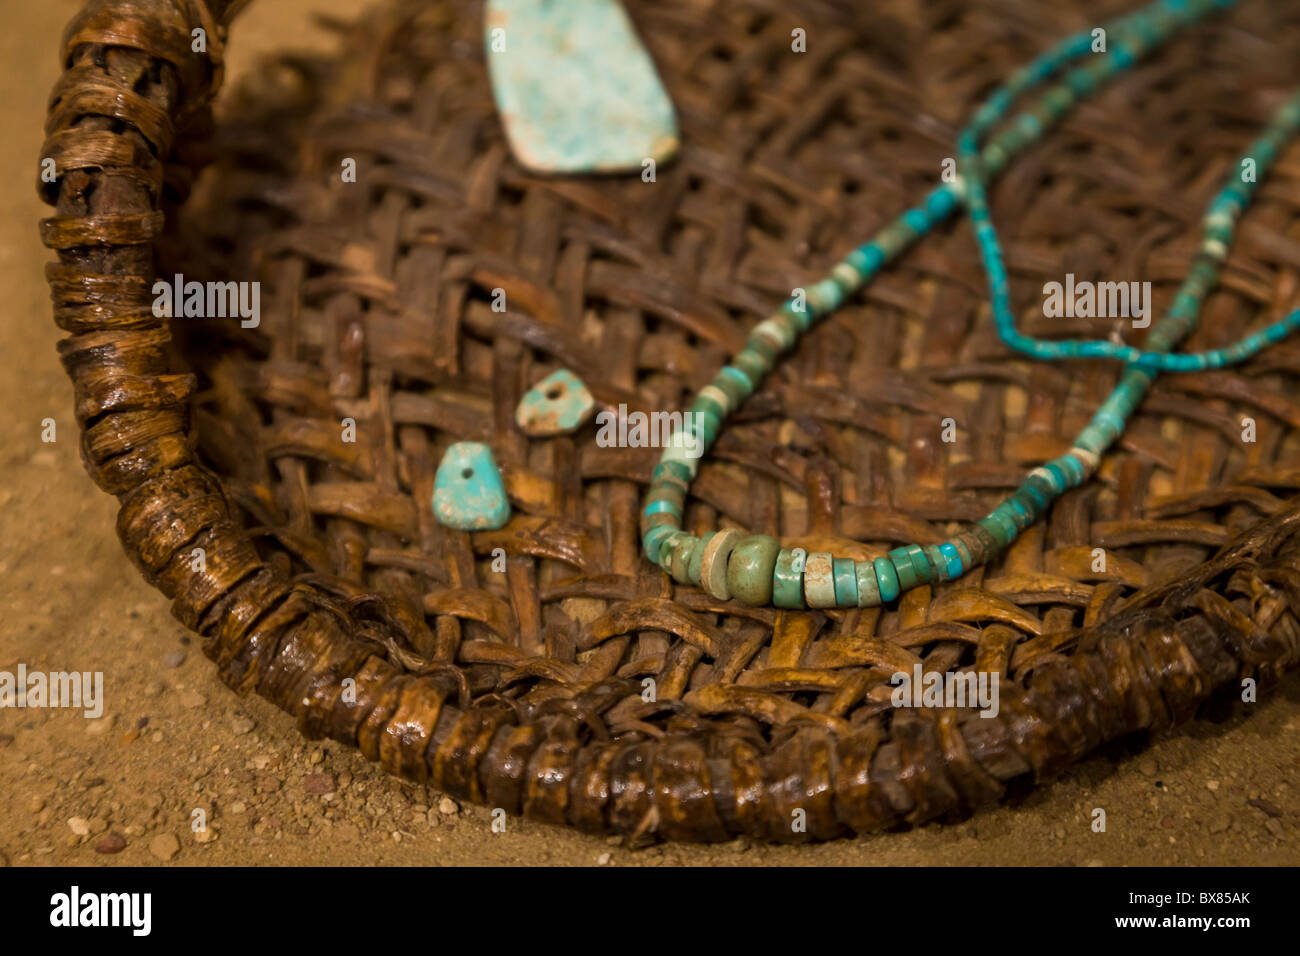 Turquoise necklace at the Chaco Culture National Historical Park, New Mexico, USA. Stock Photo